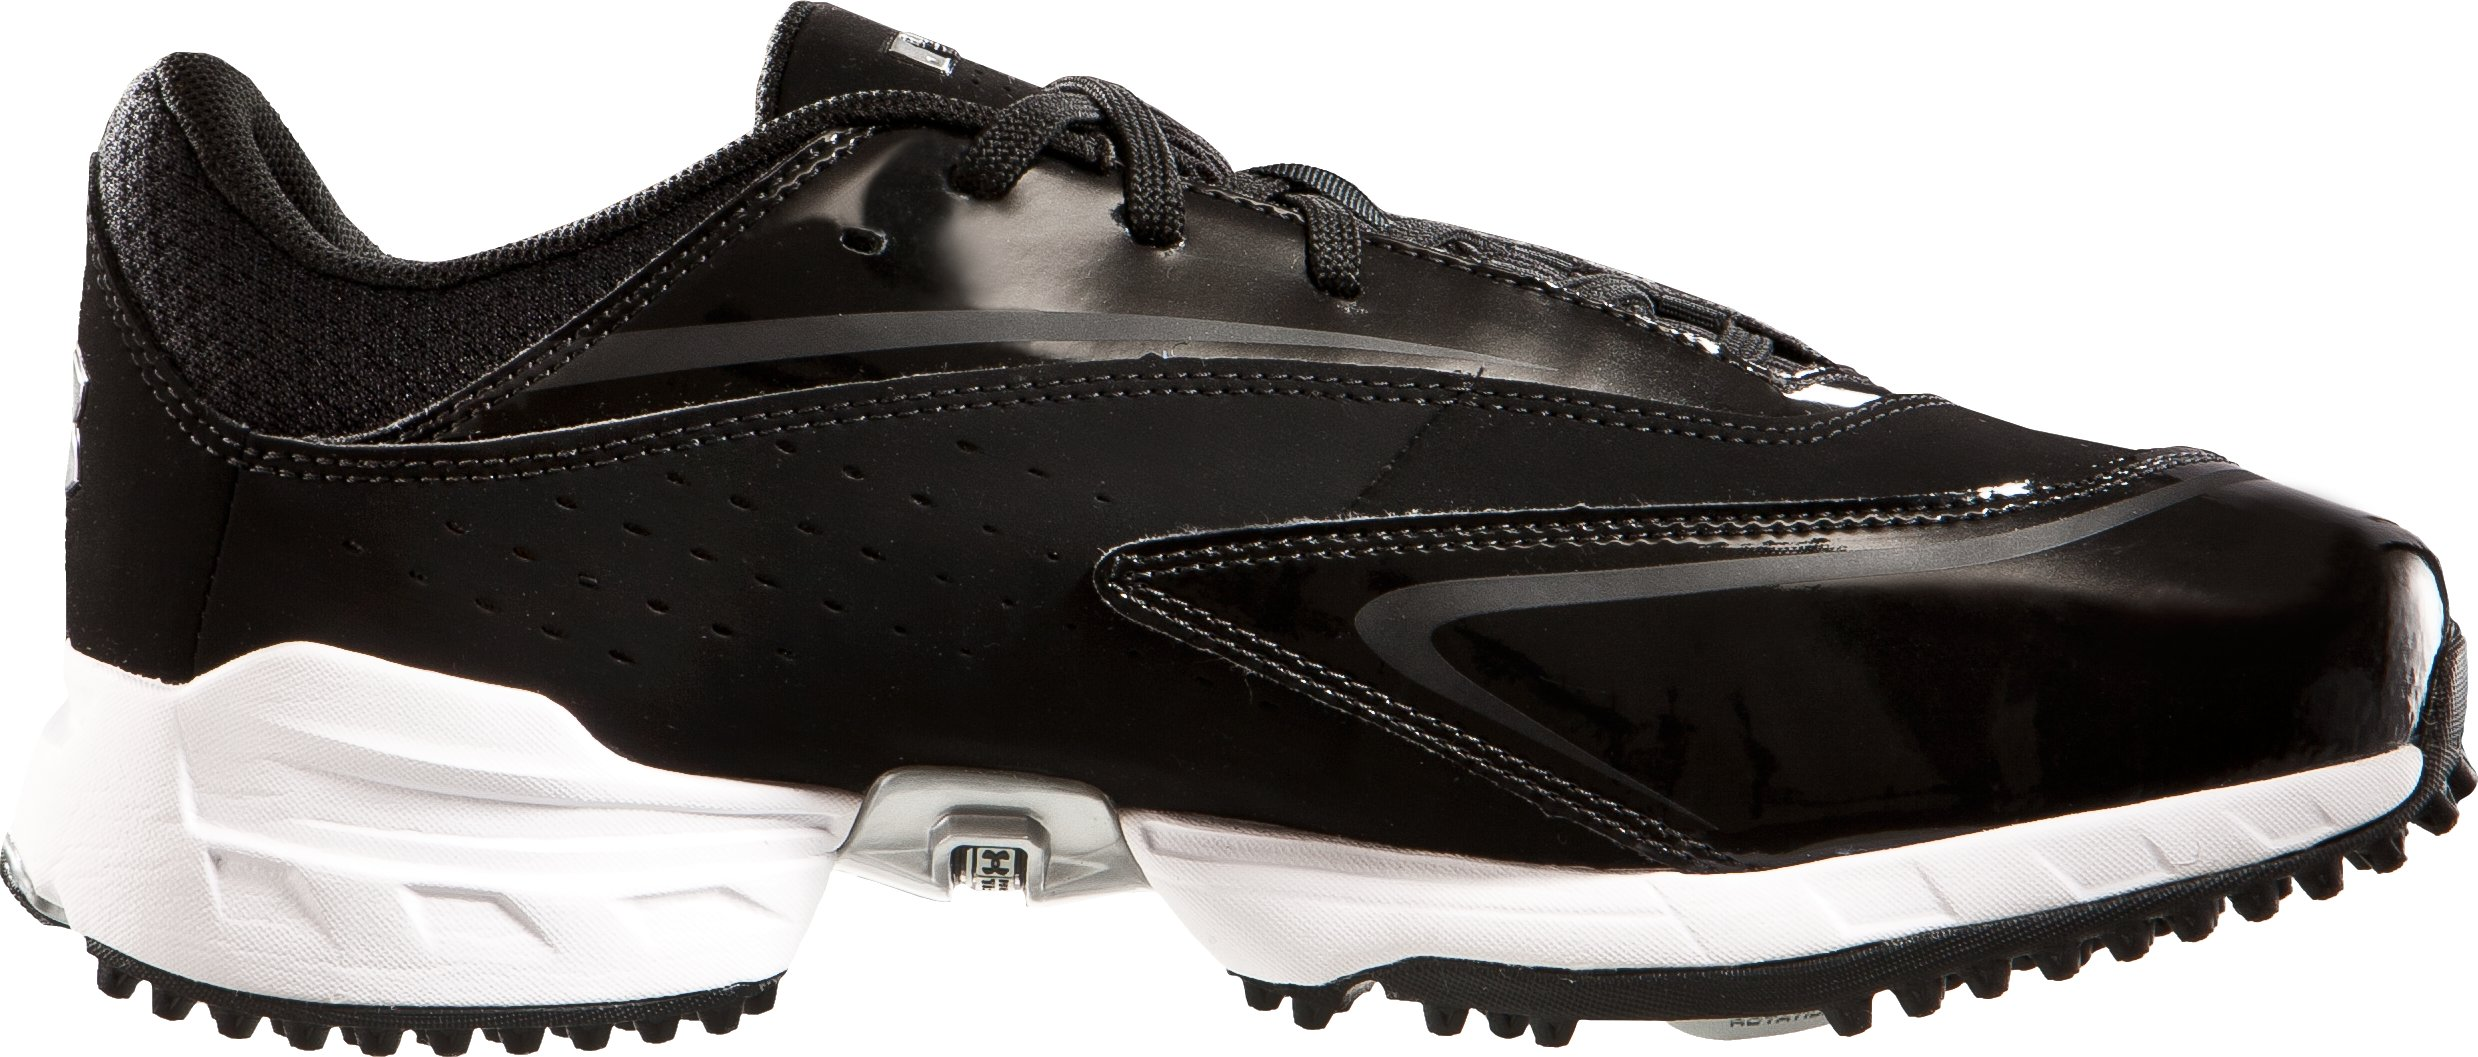 Men's UA Natural III Baseball Training Shoes, Black